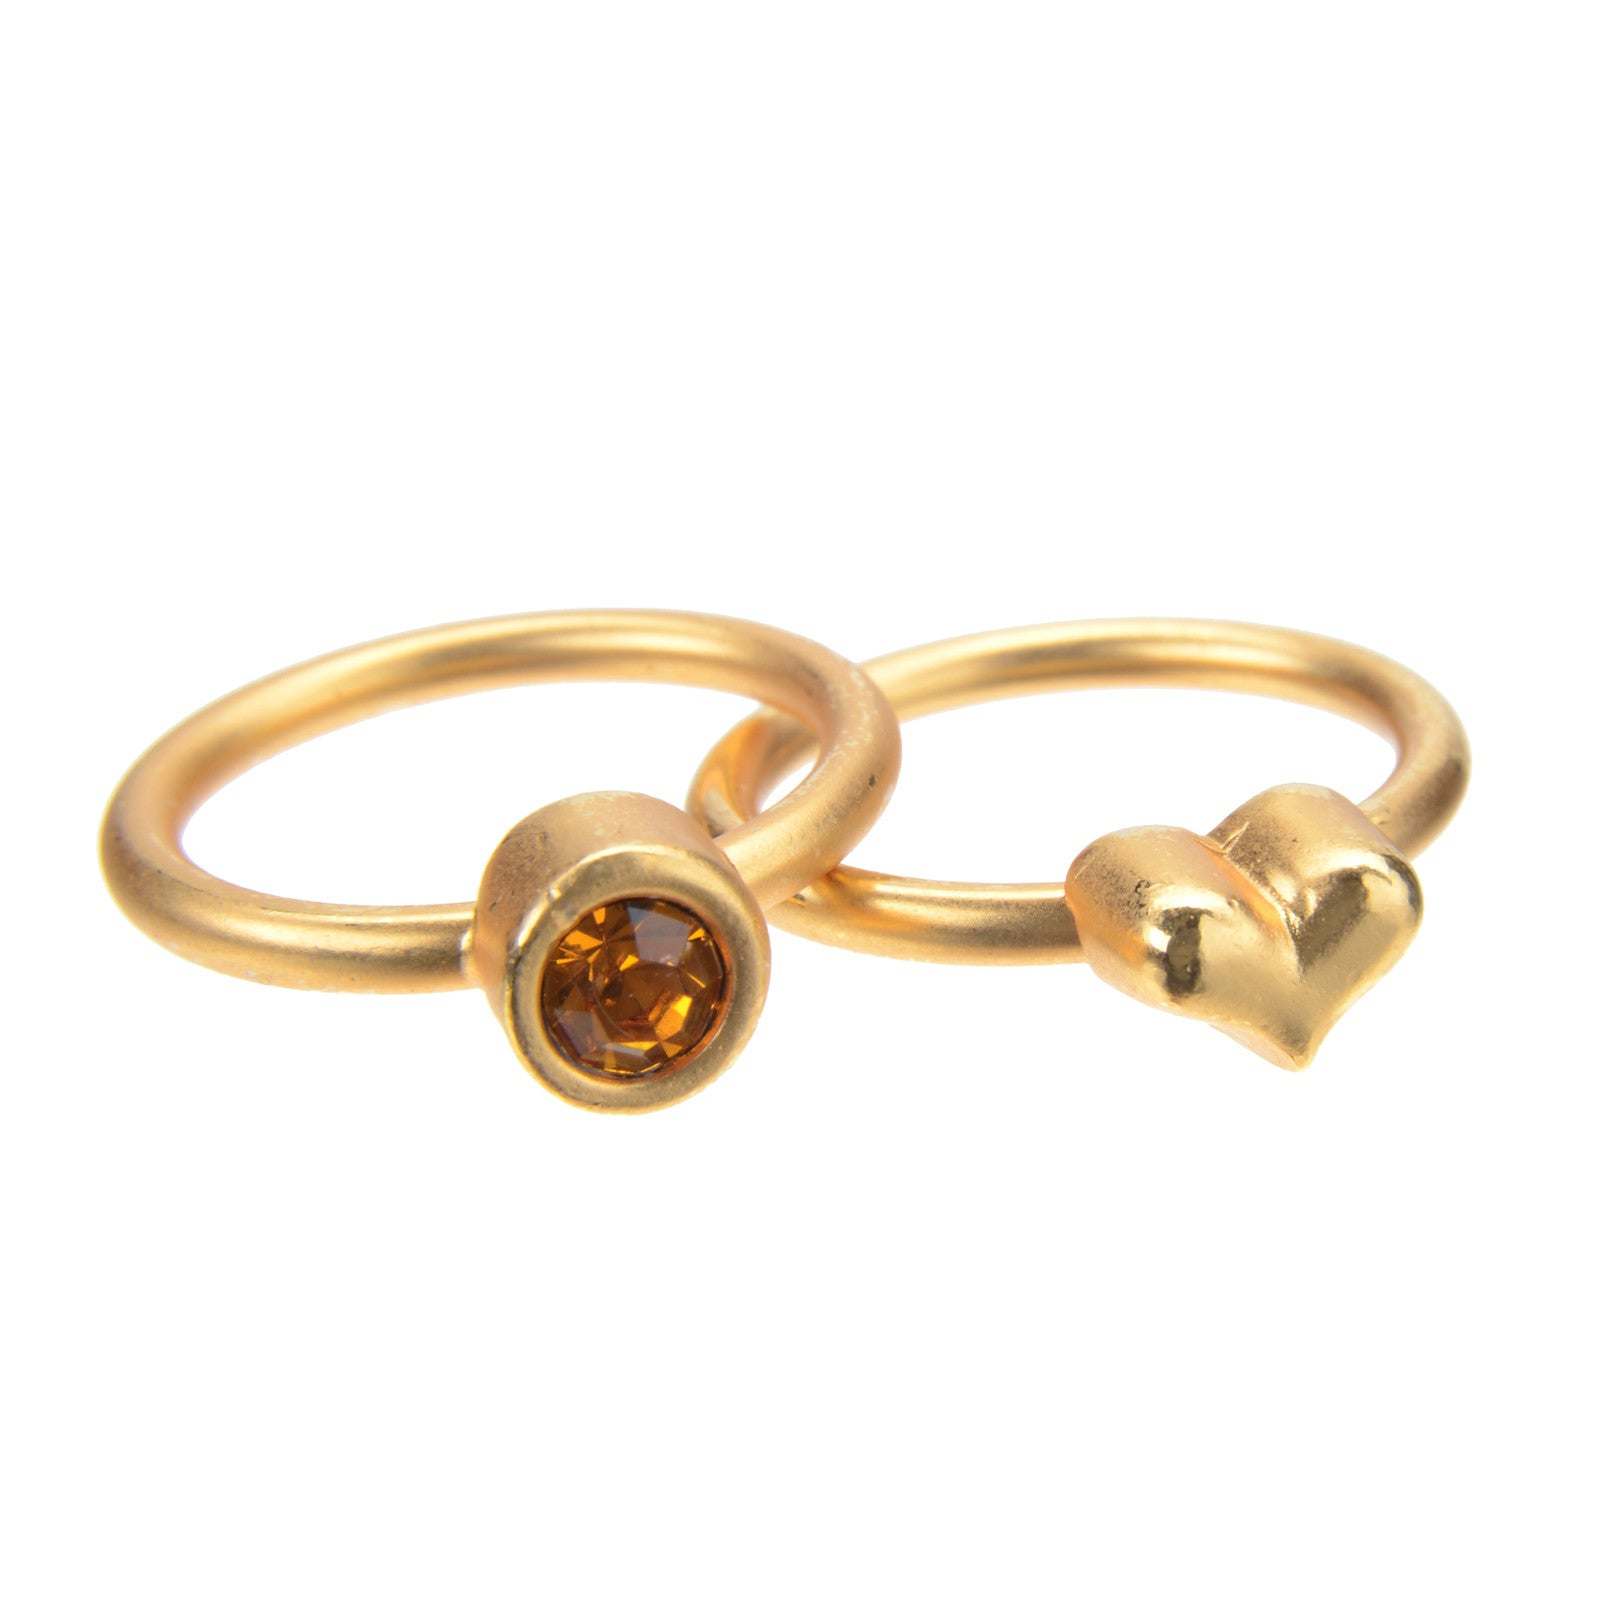 November Topaz Birthstone Ring Set - Whitney Howard Designs